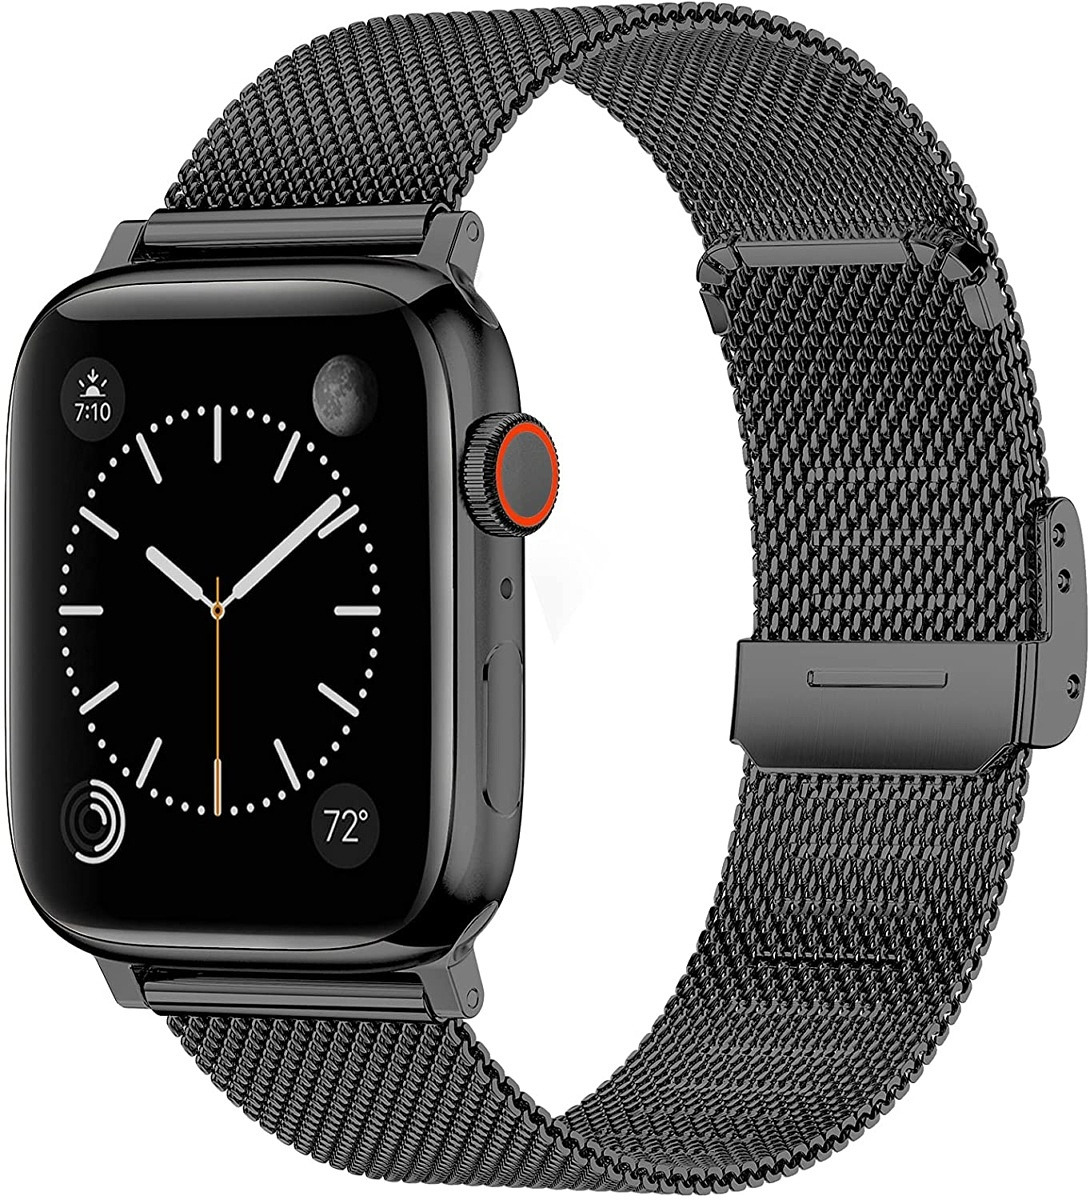 Swhatty Milanese Loop